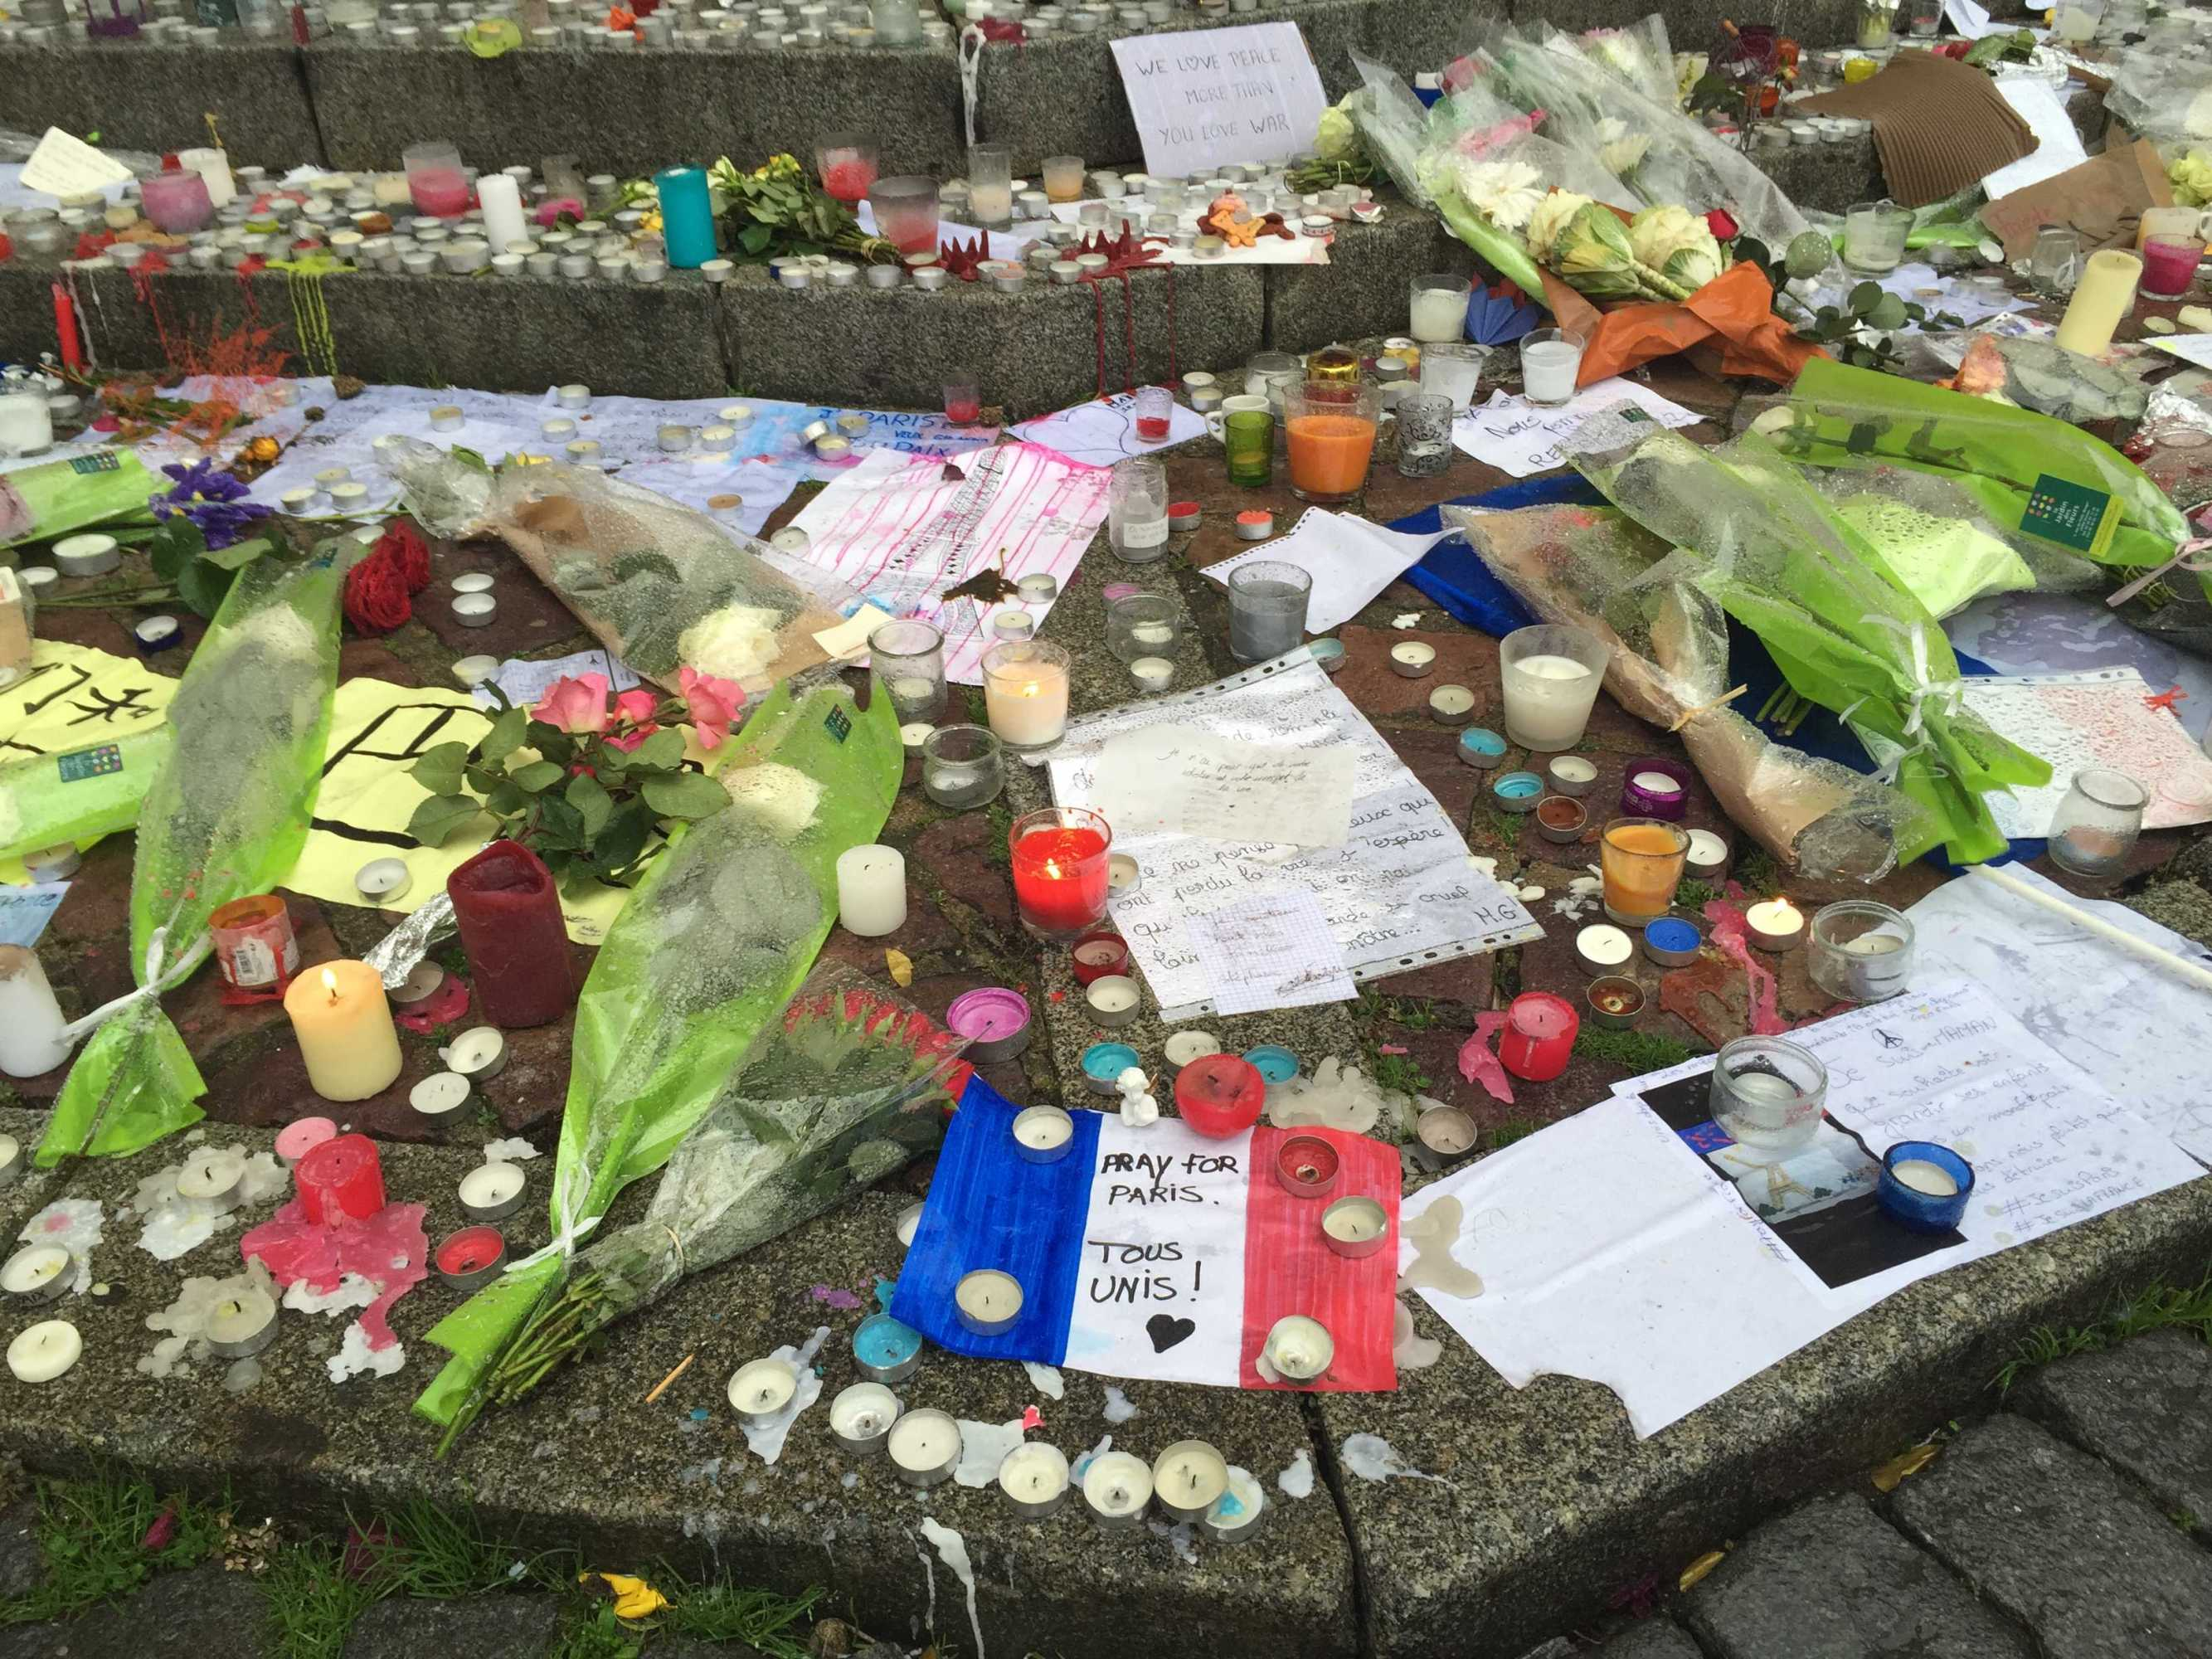 Those in Rennes made a memorial in the city center Nov. 17. Credit: Danielle Kaye/Chronicle